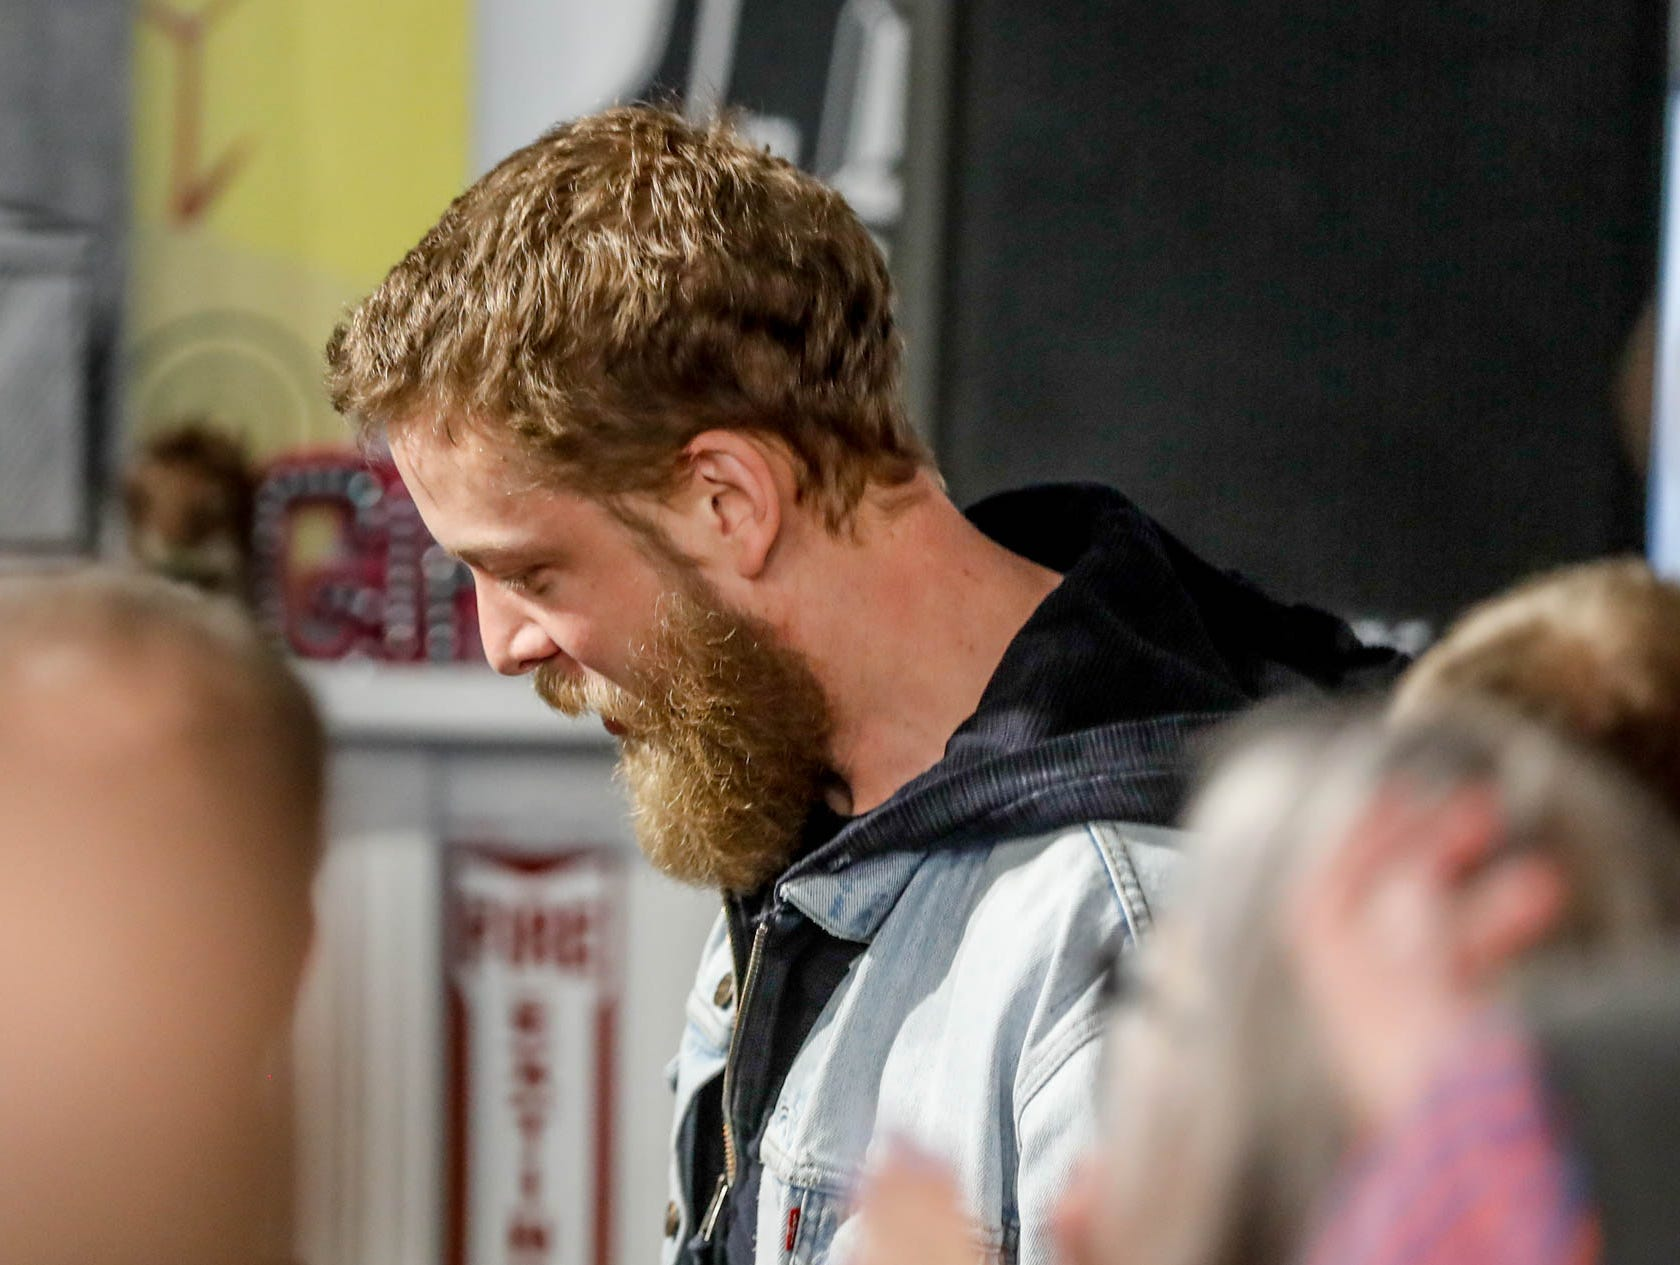 Mumford & Sons band member Ted Dwane arrives to make a special in-store appearance at Indy CD & Vinyl on Monday, March 25, 2019.